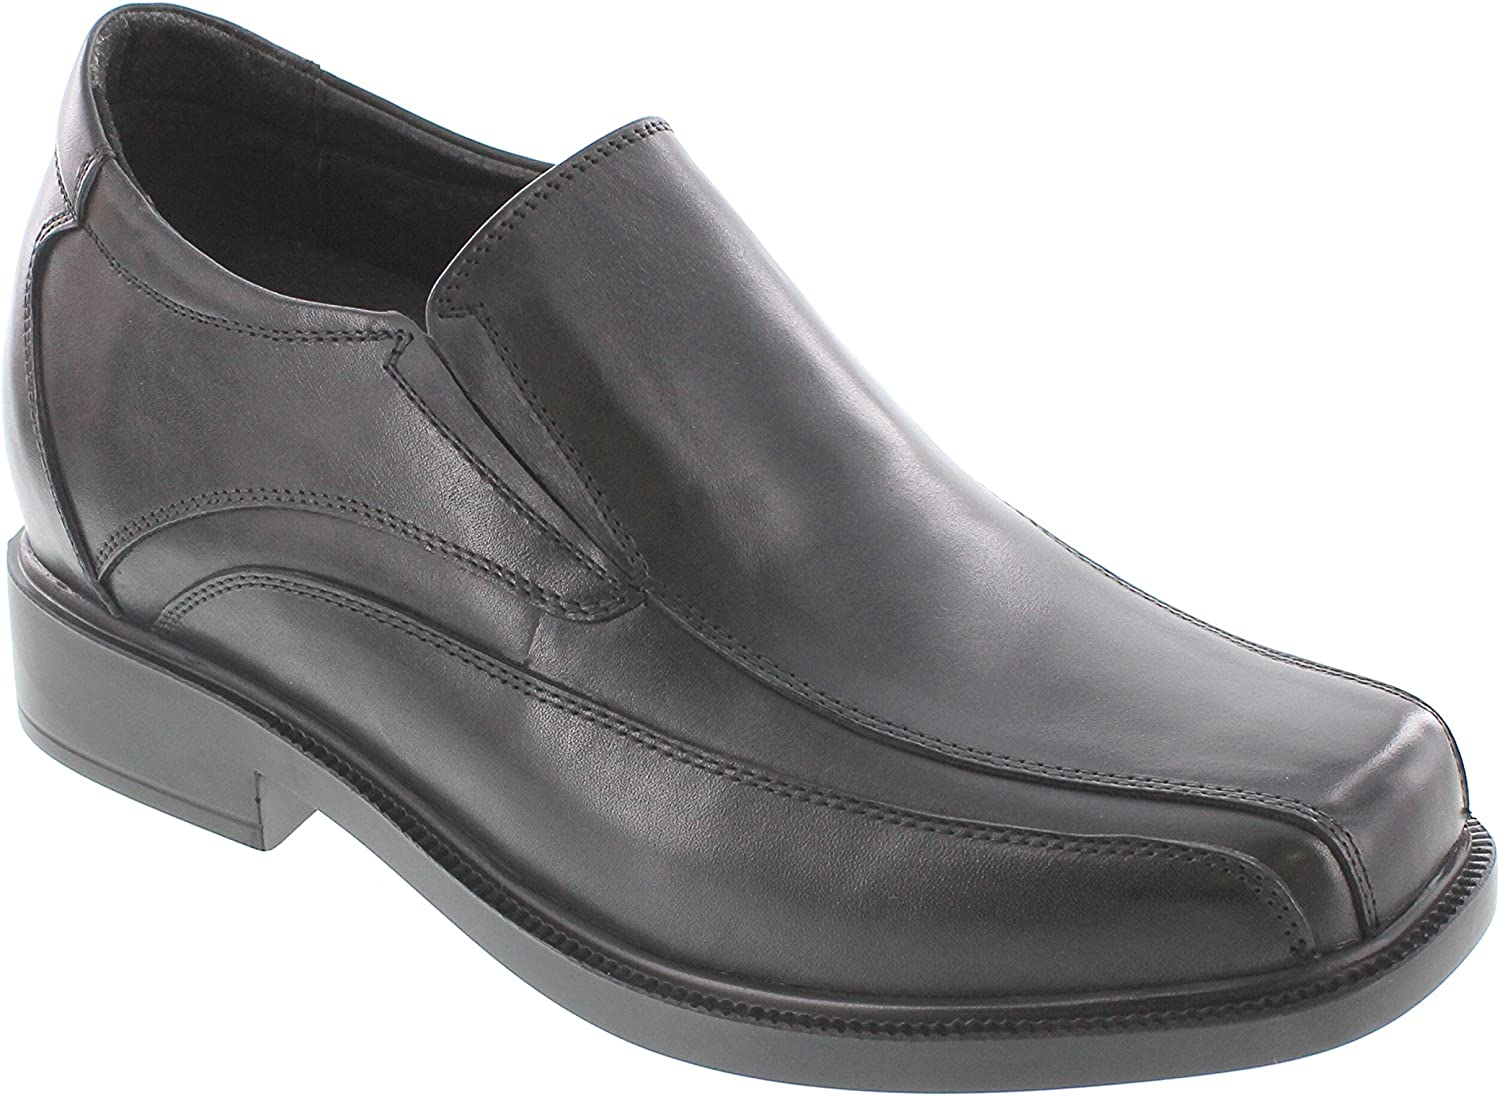 CALTO Men's Invisible Height Increasing Elevator shoes - Black Premium Leather Slip-on Casual Loafers - 3.3 Inches Taller - T5273